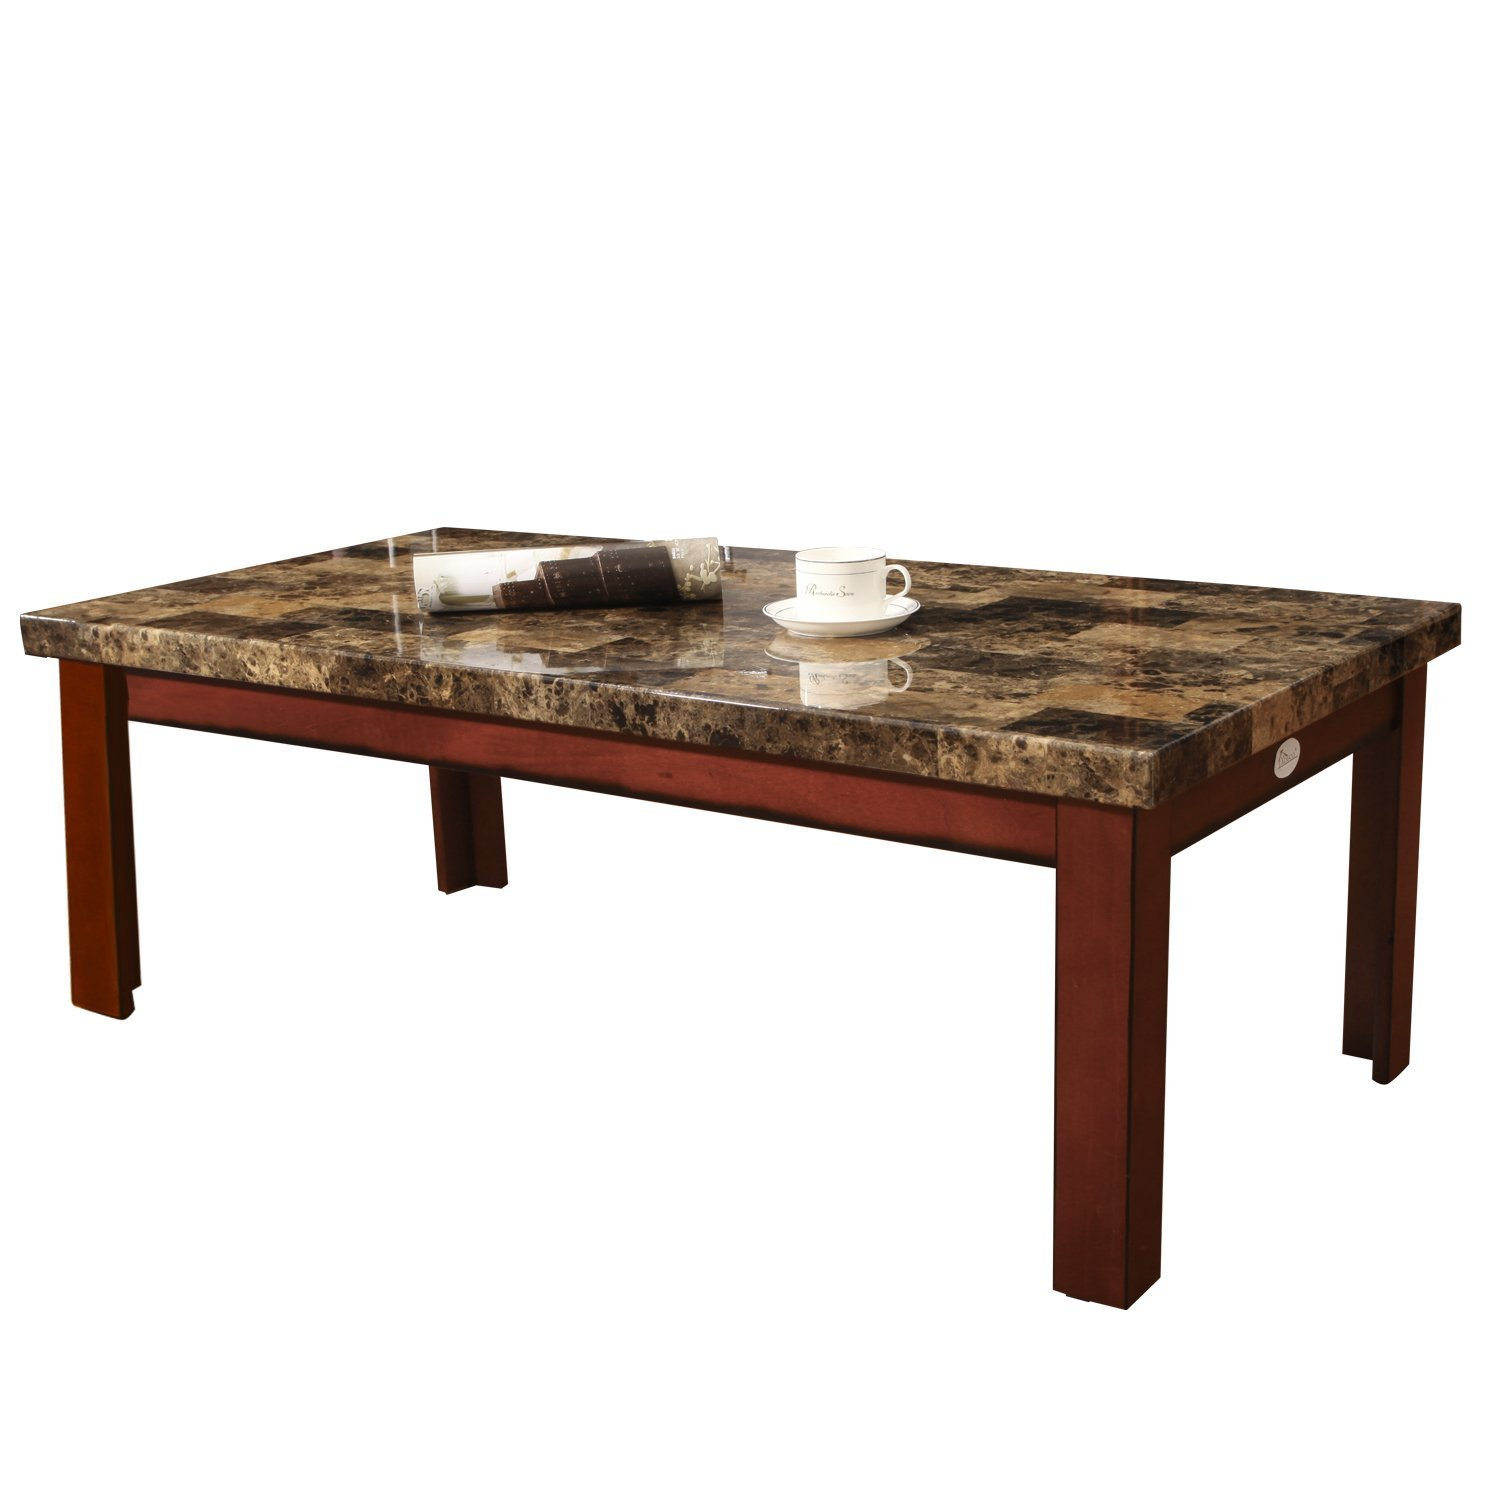 Marble Coffee Table Rectangular: Adeco Walnut Color Wood Faux Marble Finish Rectangular